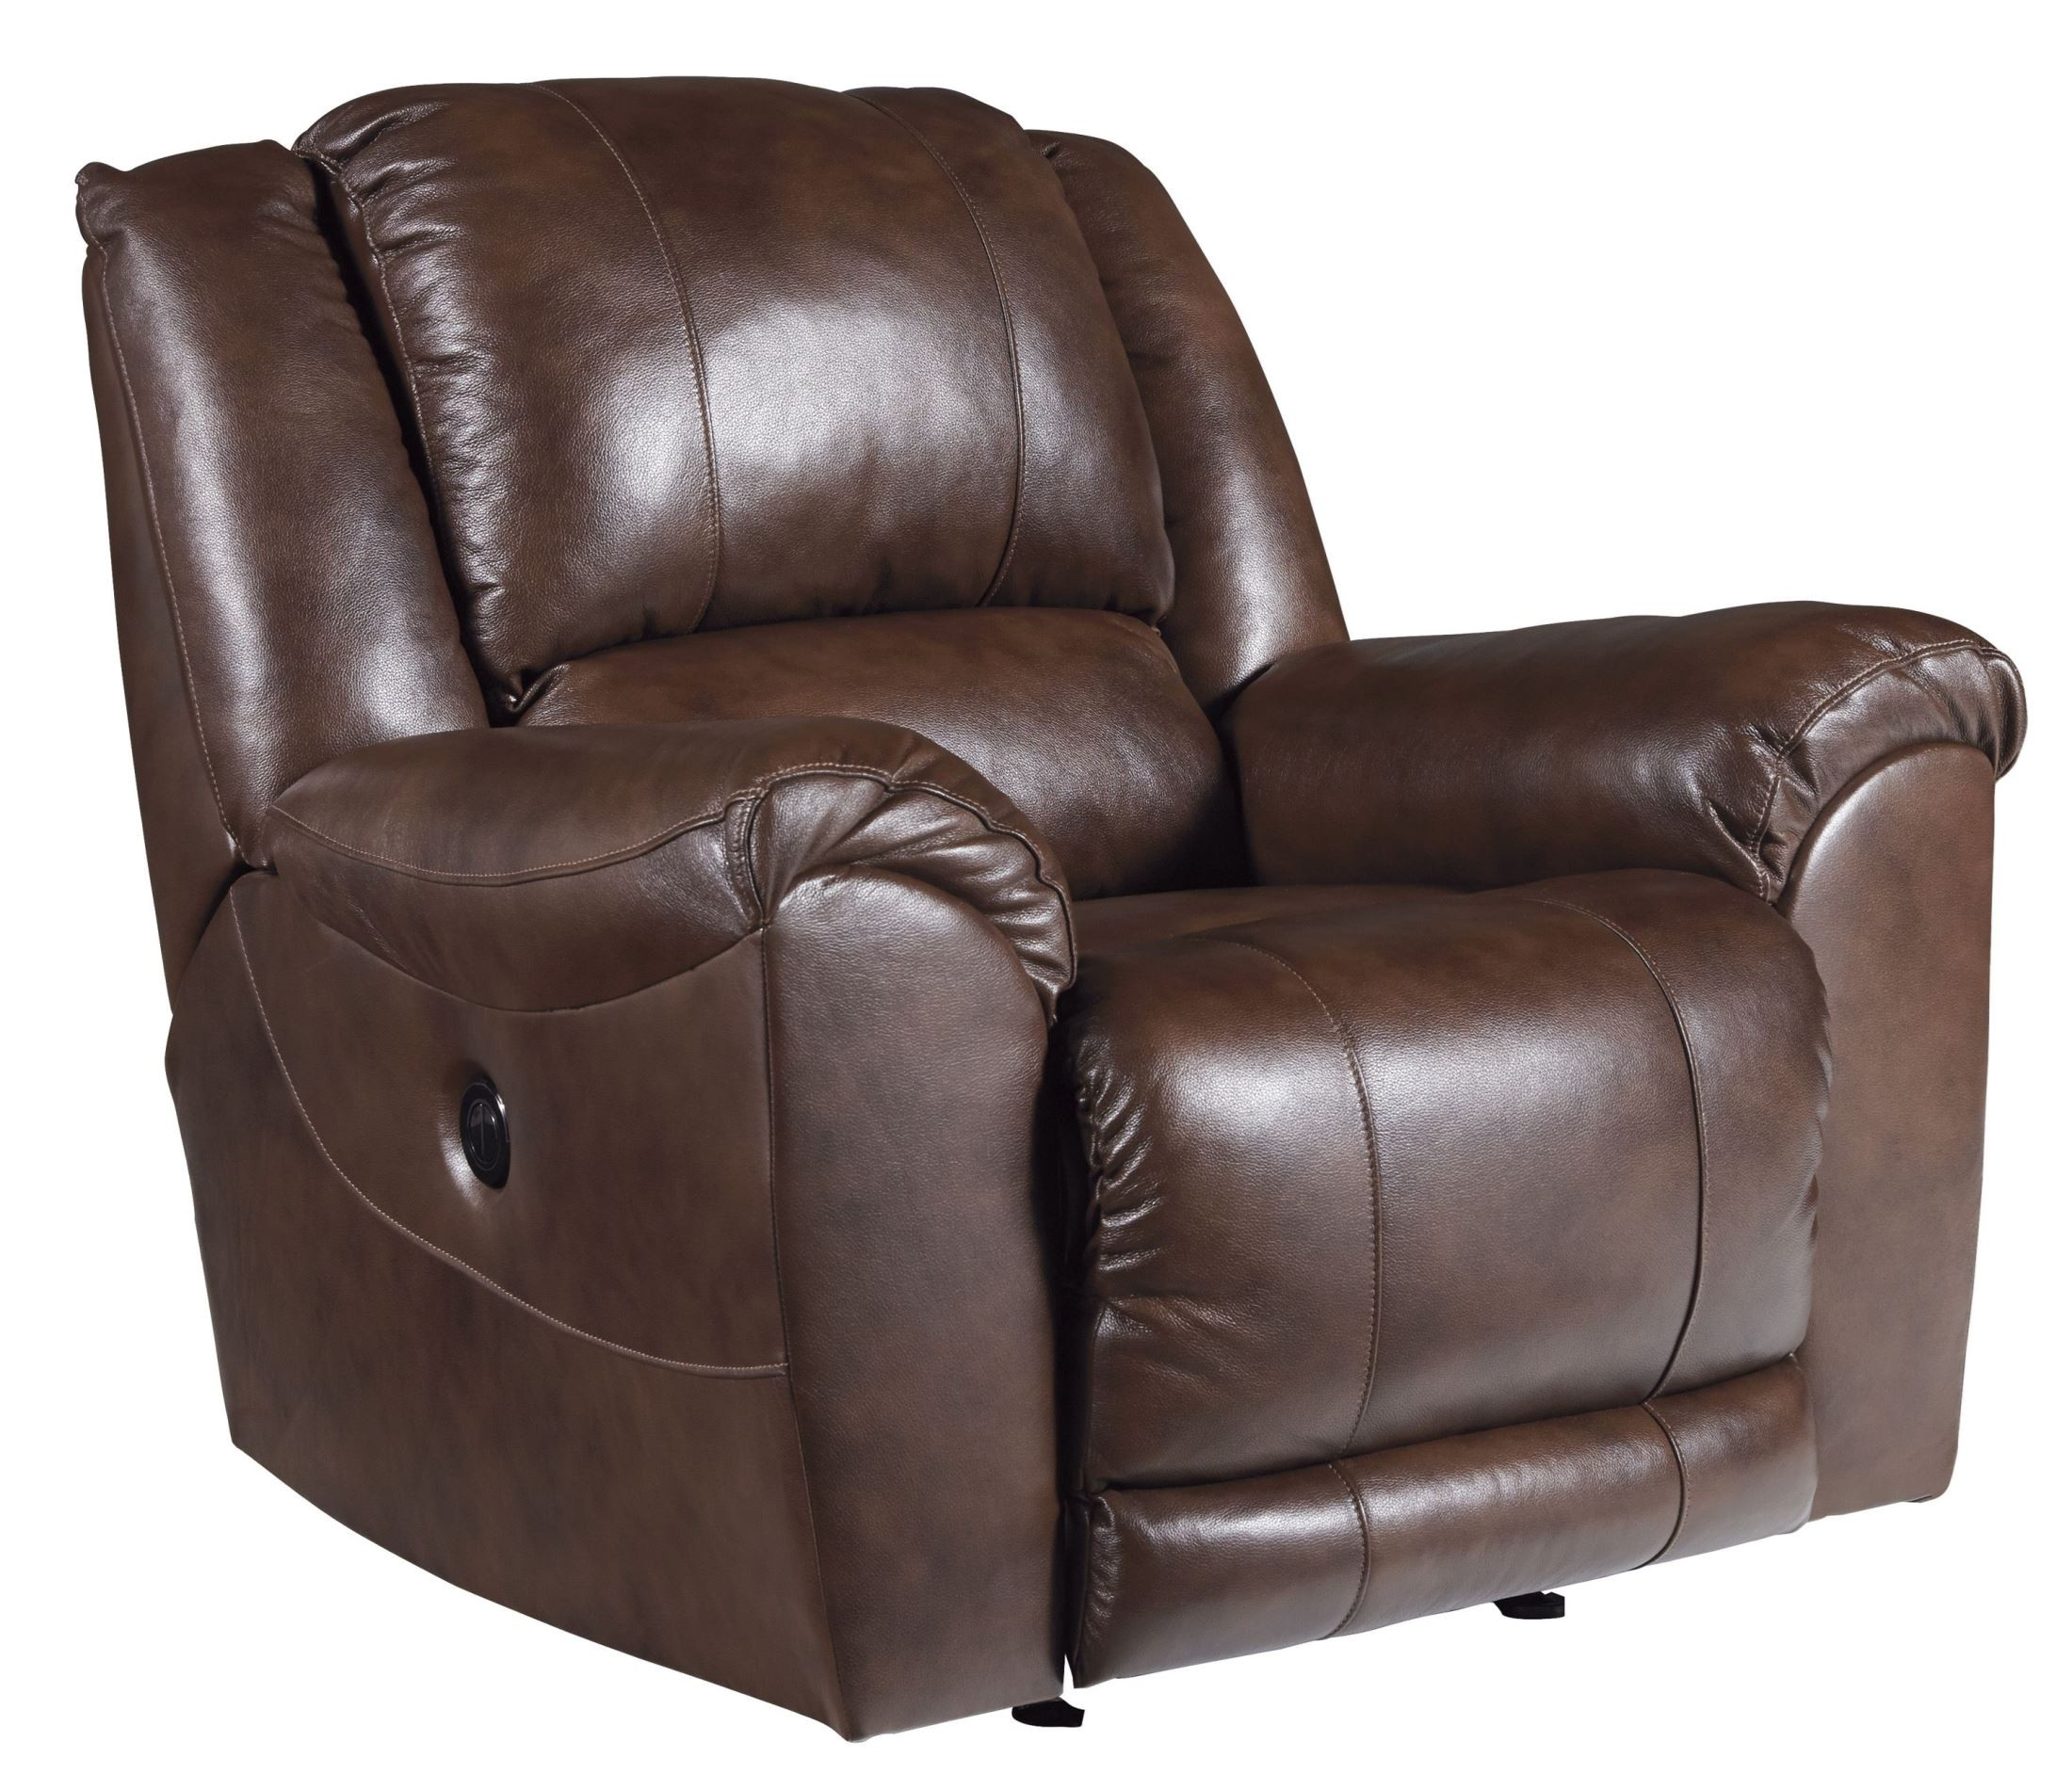 Persiphone Canyon Power Rocker Recliner From Ashley